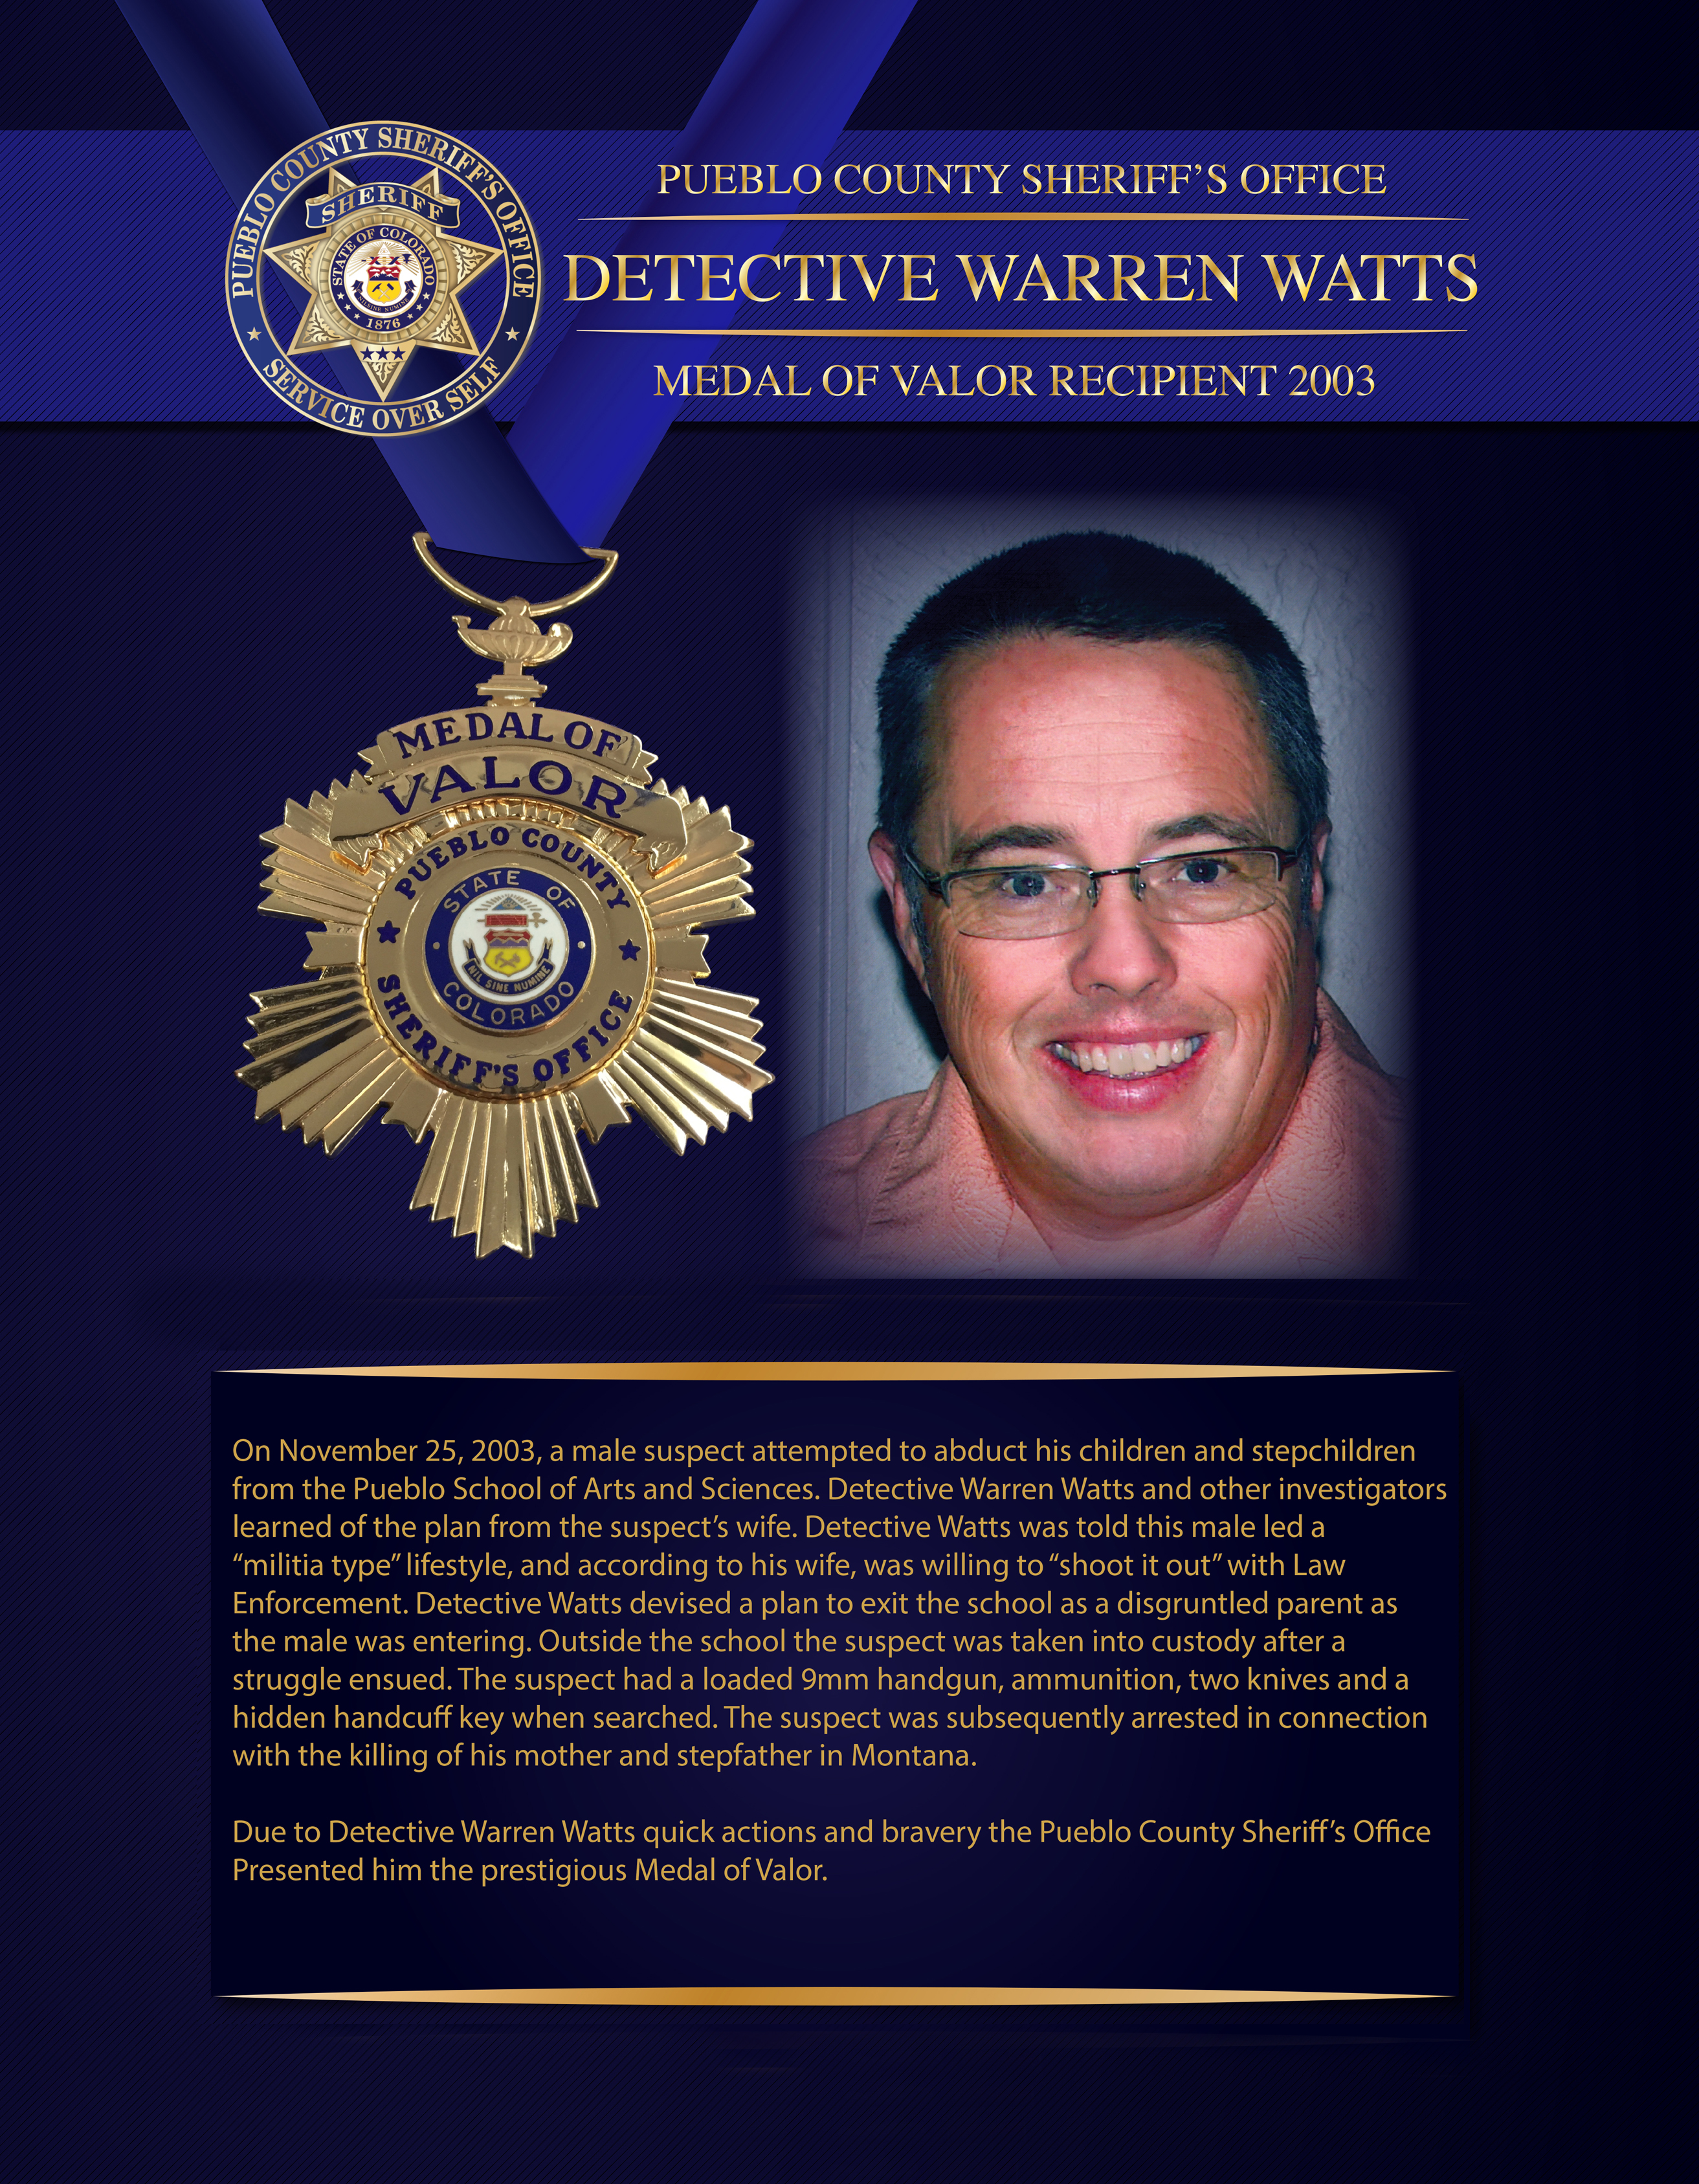 Watts Medal of Valor